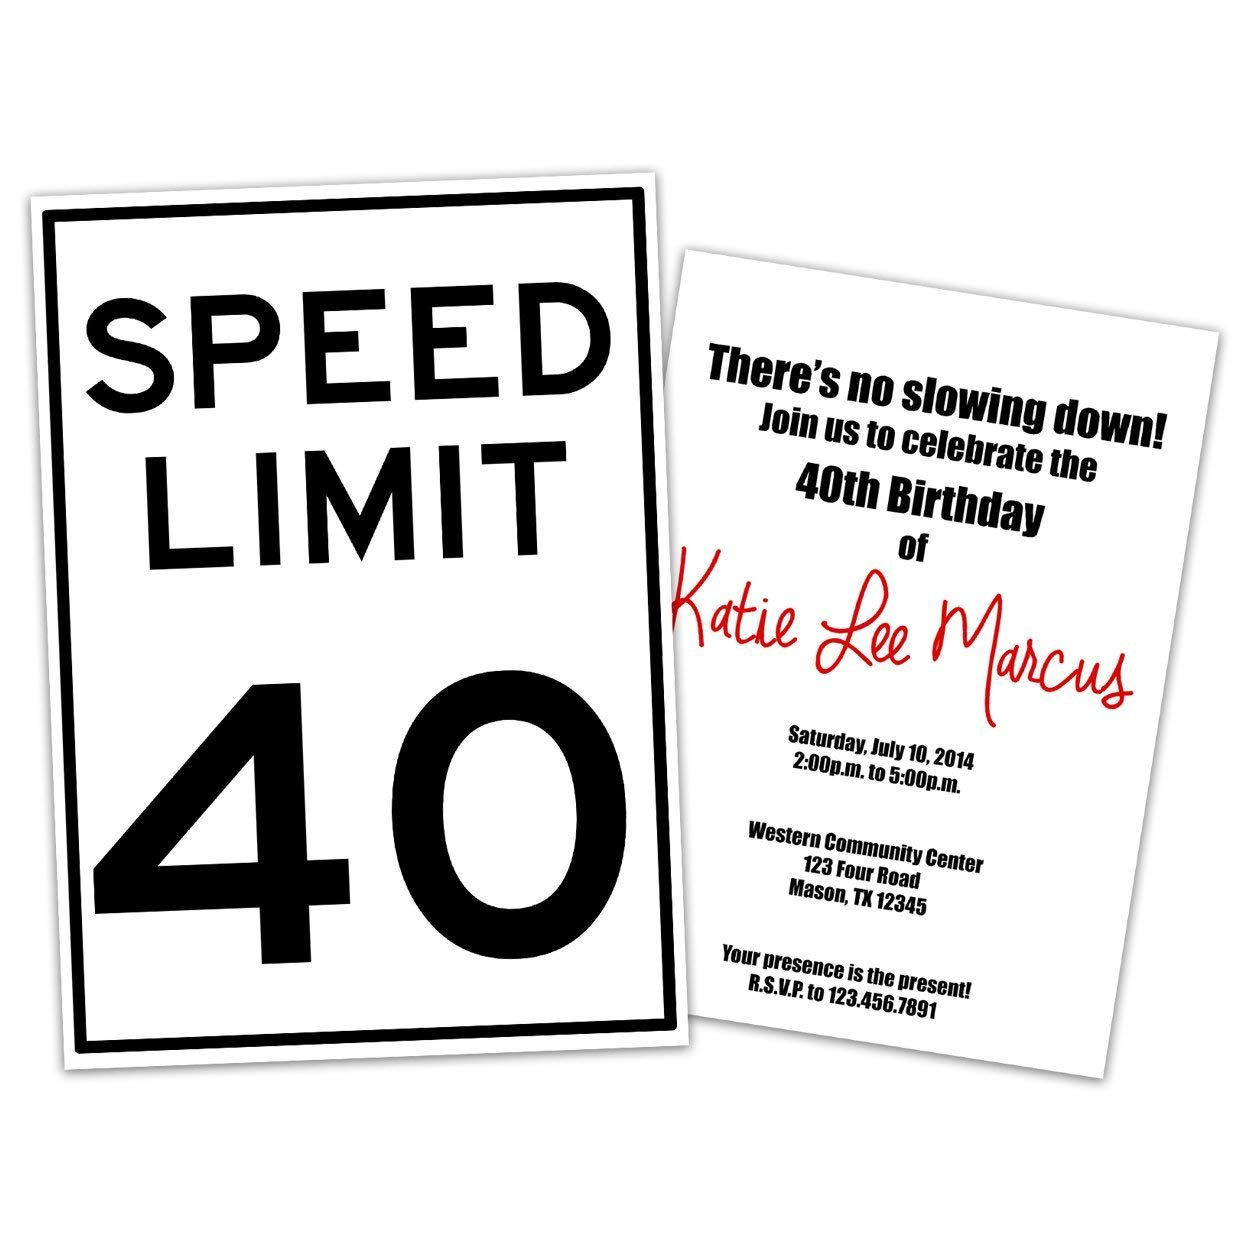 Amazon Funny Speed Limit Birthday Invitations Man Woman 30th 40th 50th 60th 70th 80th ANY Age Handmade